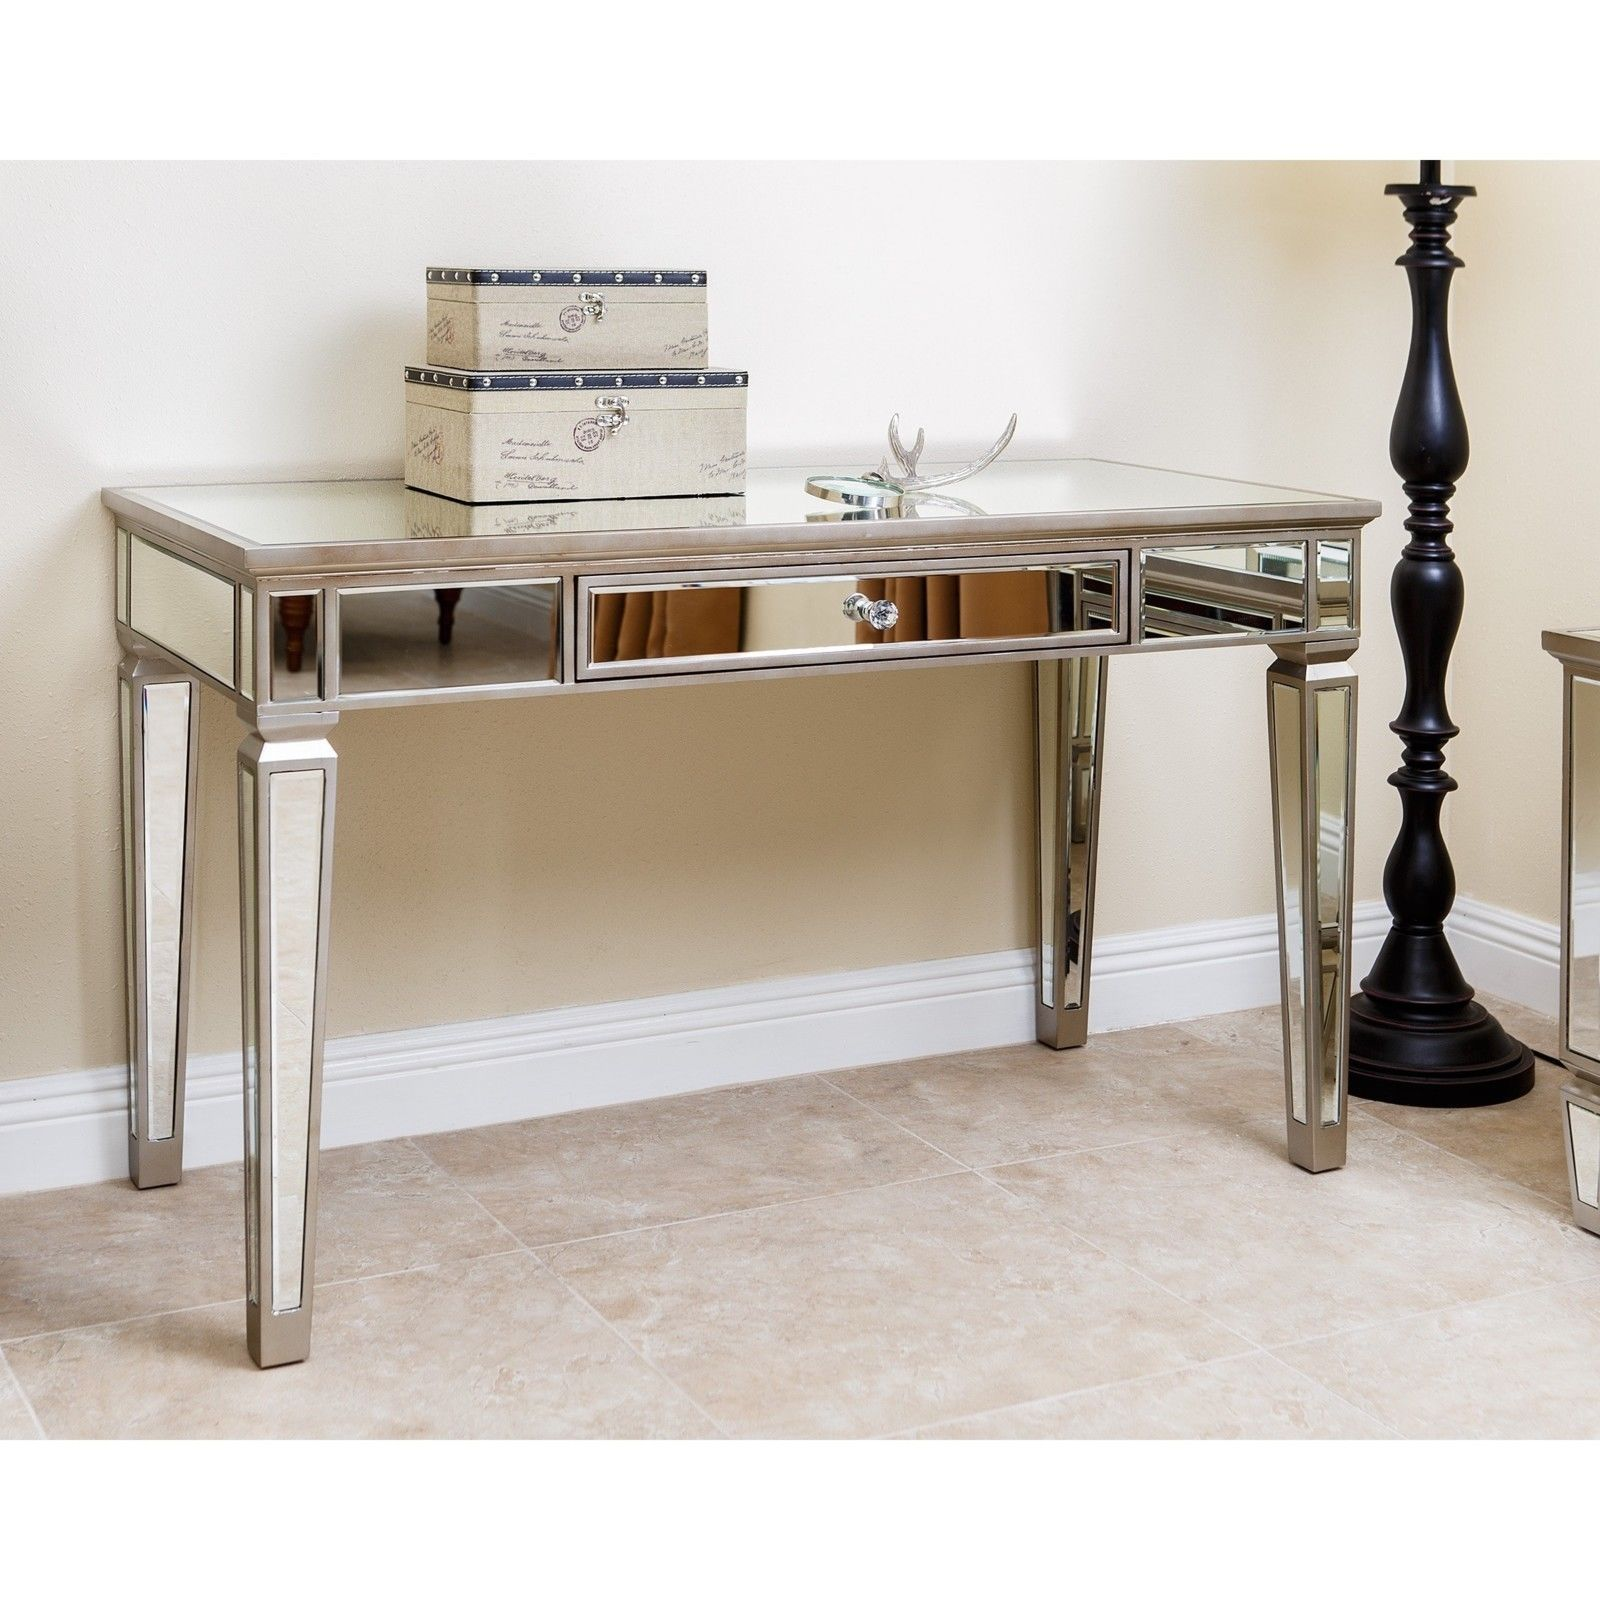 desk home rouge chopin decorating ideas and design gold shipping today mirror maison vanity mirrored free